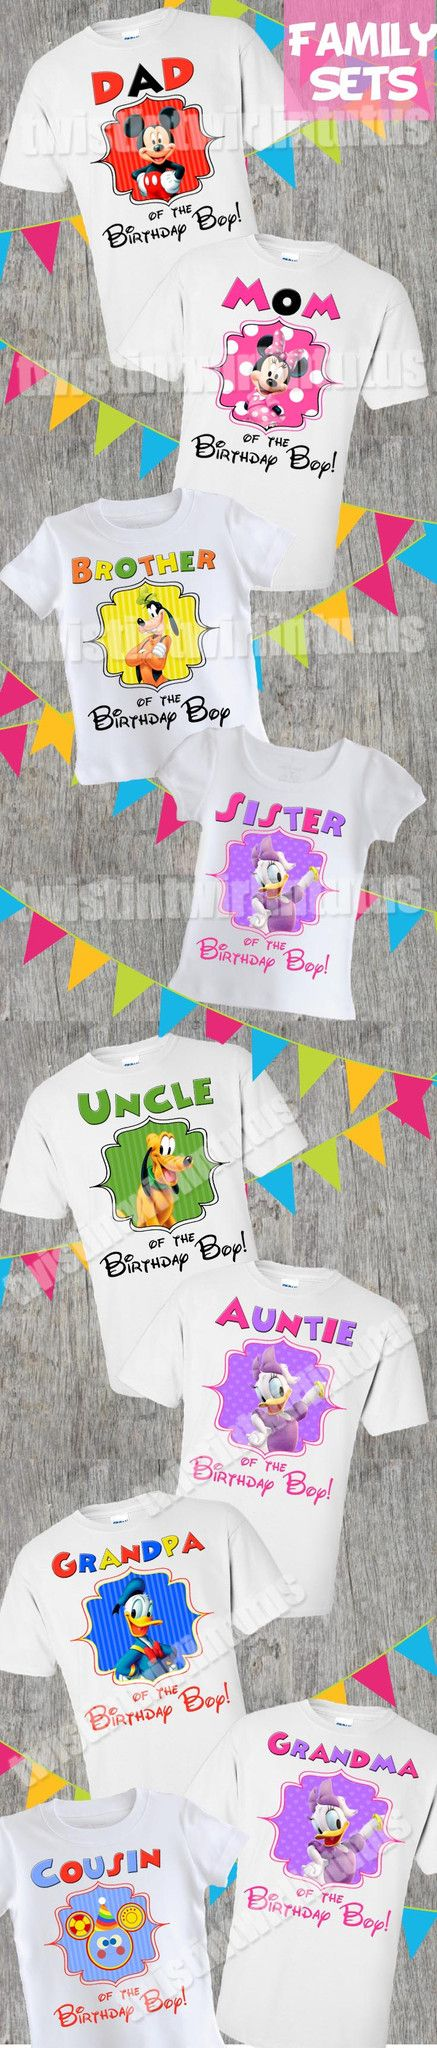 9cb193d9 Mickey Mouse Clubhouse Family Birthday Shirts | Mickey Mouse Clubhouse  Birthday Party | Minnie Mouse Birthday Party | Mickey Mouse Birthday Ideas  | Mickey ...